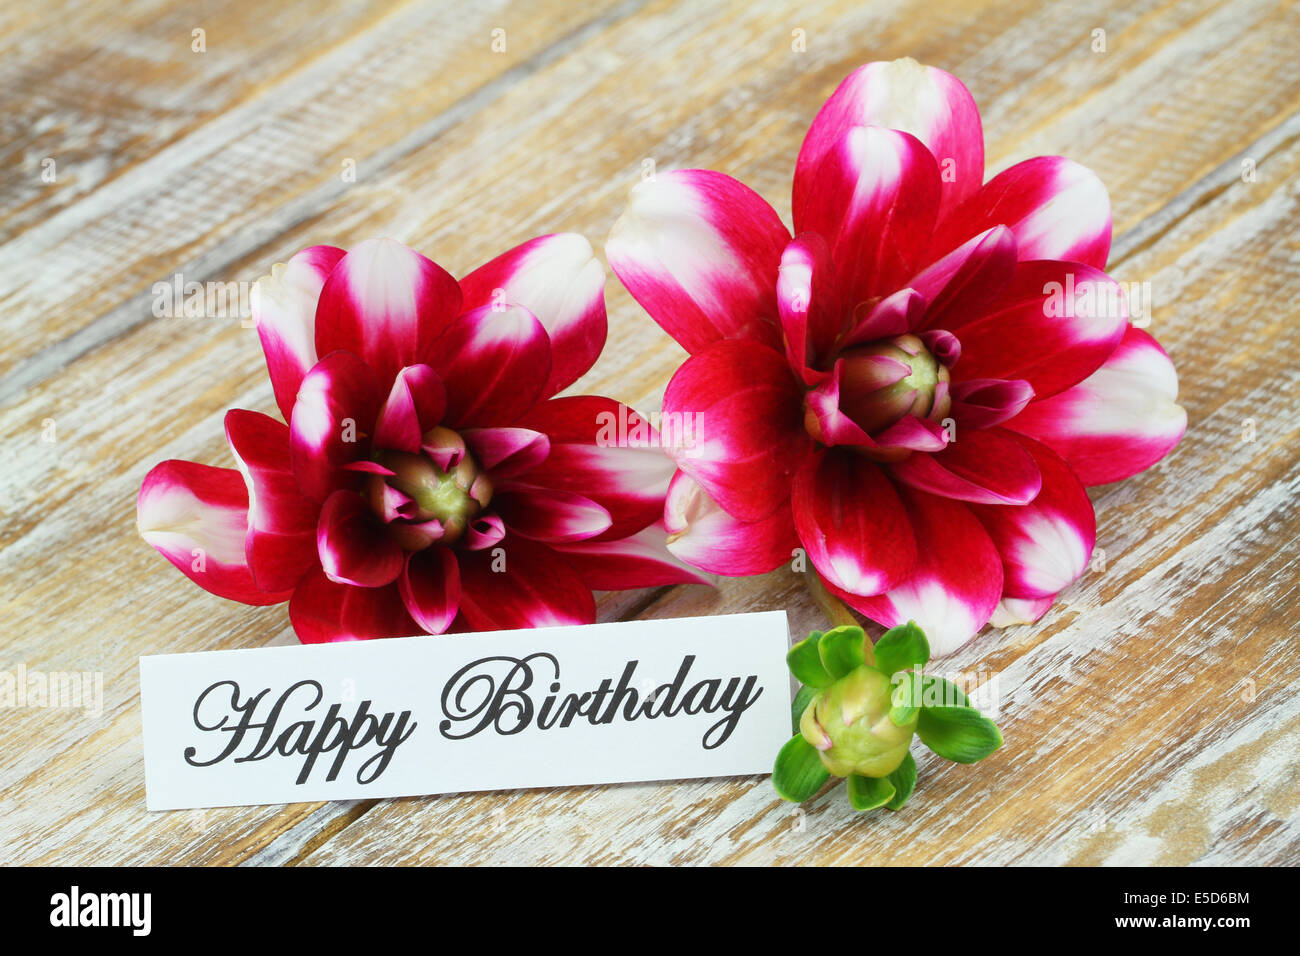 Happy birthday card with dahlia flowers stock photo 72205160 alamy happy birthday card with dahlia flowers izmirmasajfo